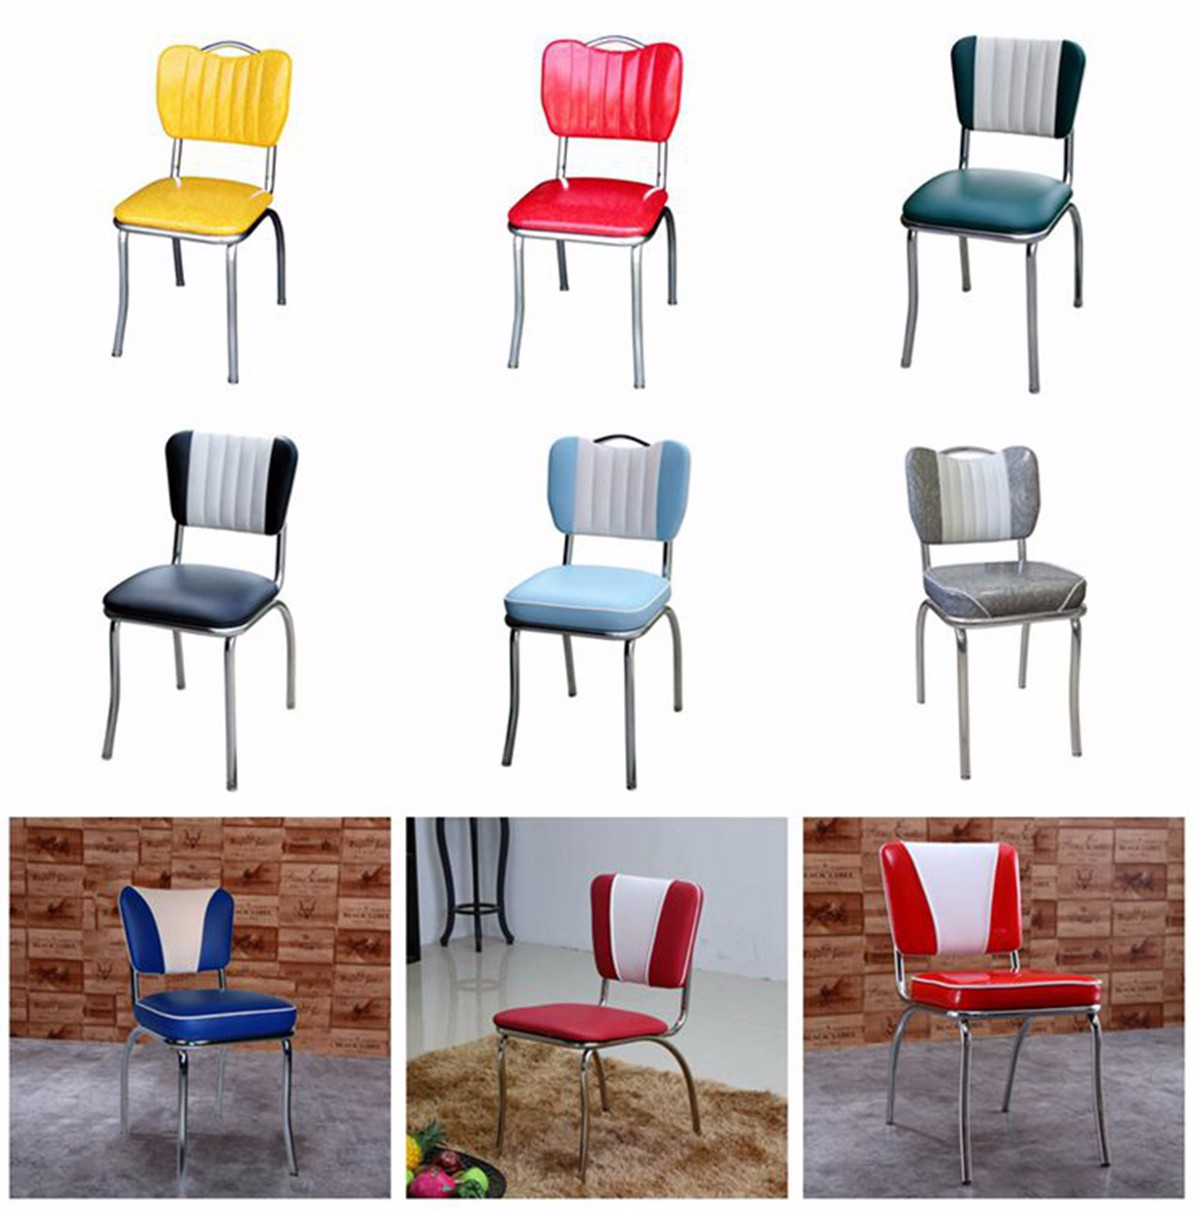 inexpensive Retro Furniture chairs from manufacturer for hotel-13